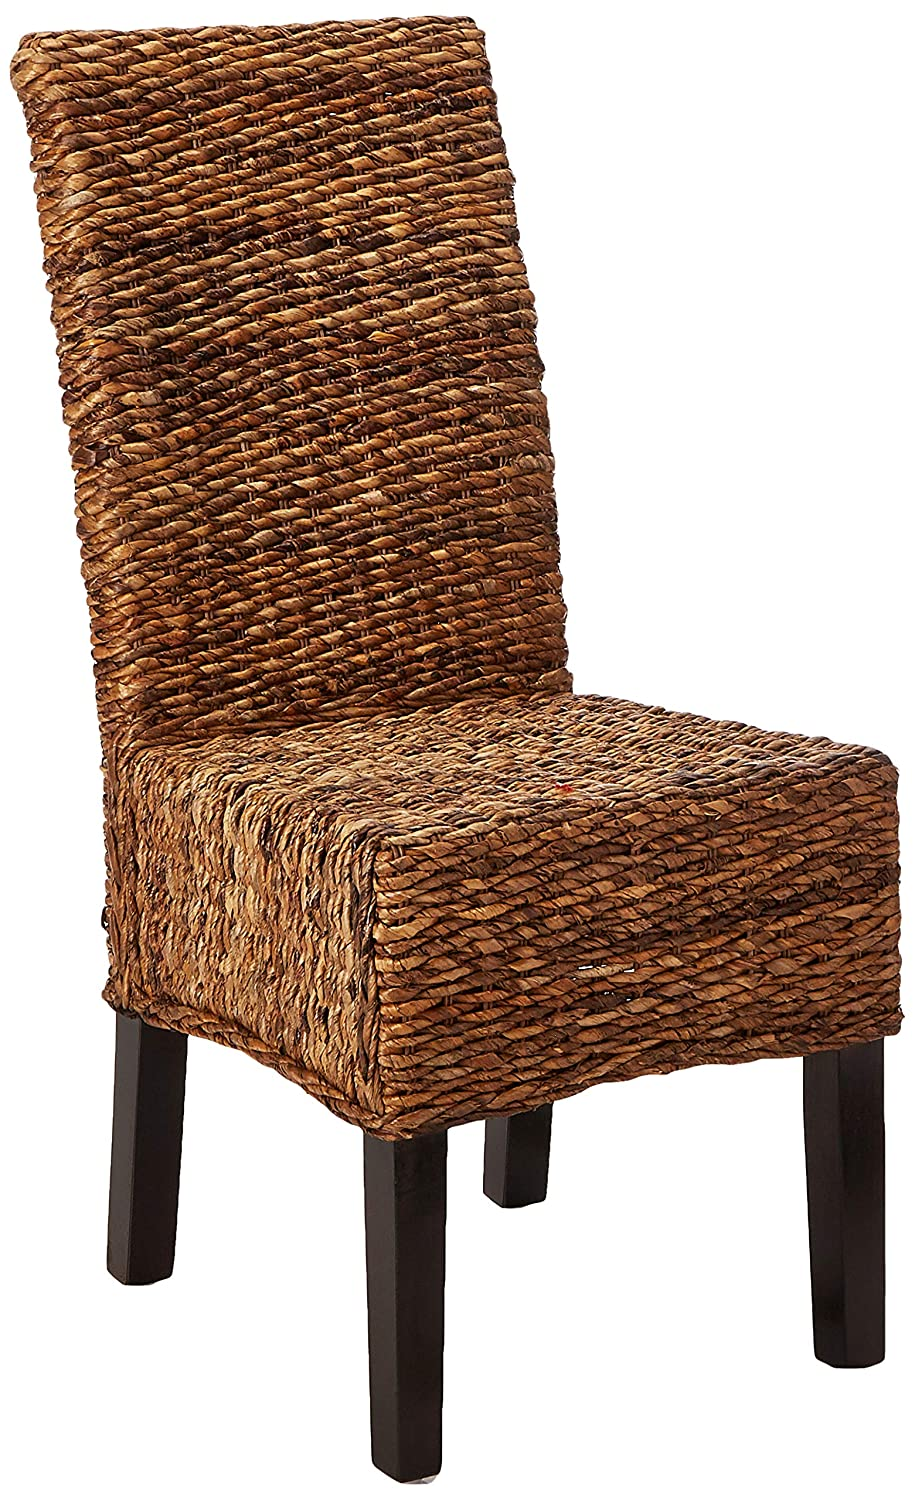 Safavieh Home Collection Avita Natural Wicker 18-inch Dining Chair Set of 2